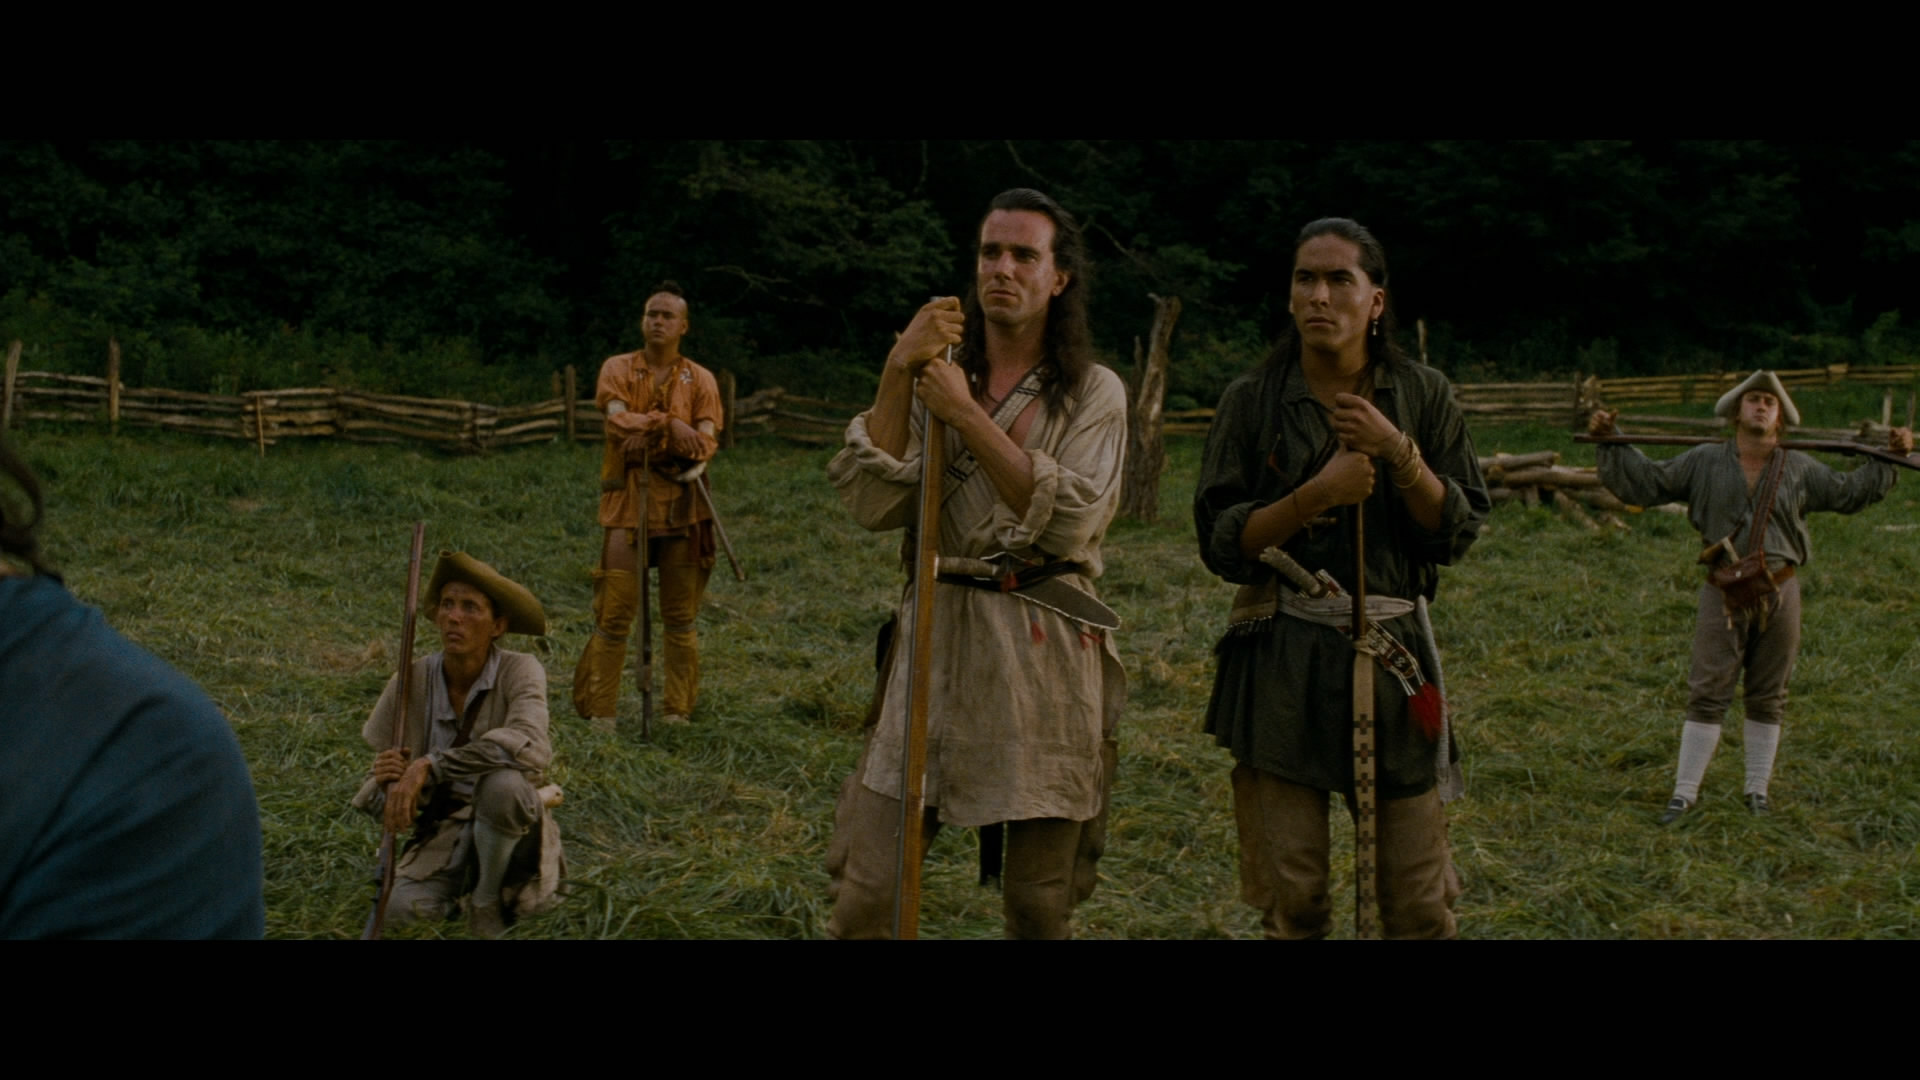 reaction papers on the last of the mohicans The last of the mohicans is grand entertainment romantic, exciting, though unremittingly violent at times real enough to elicit a visceral reaction.